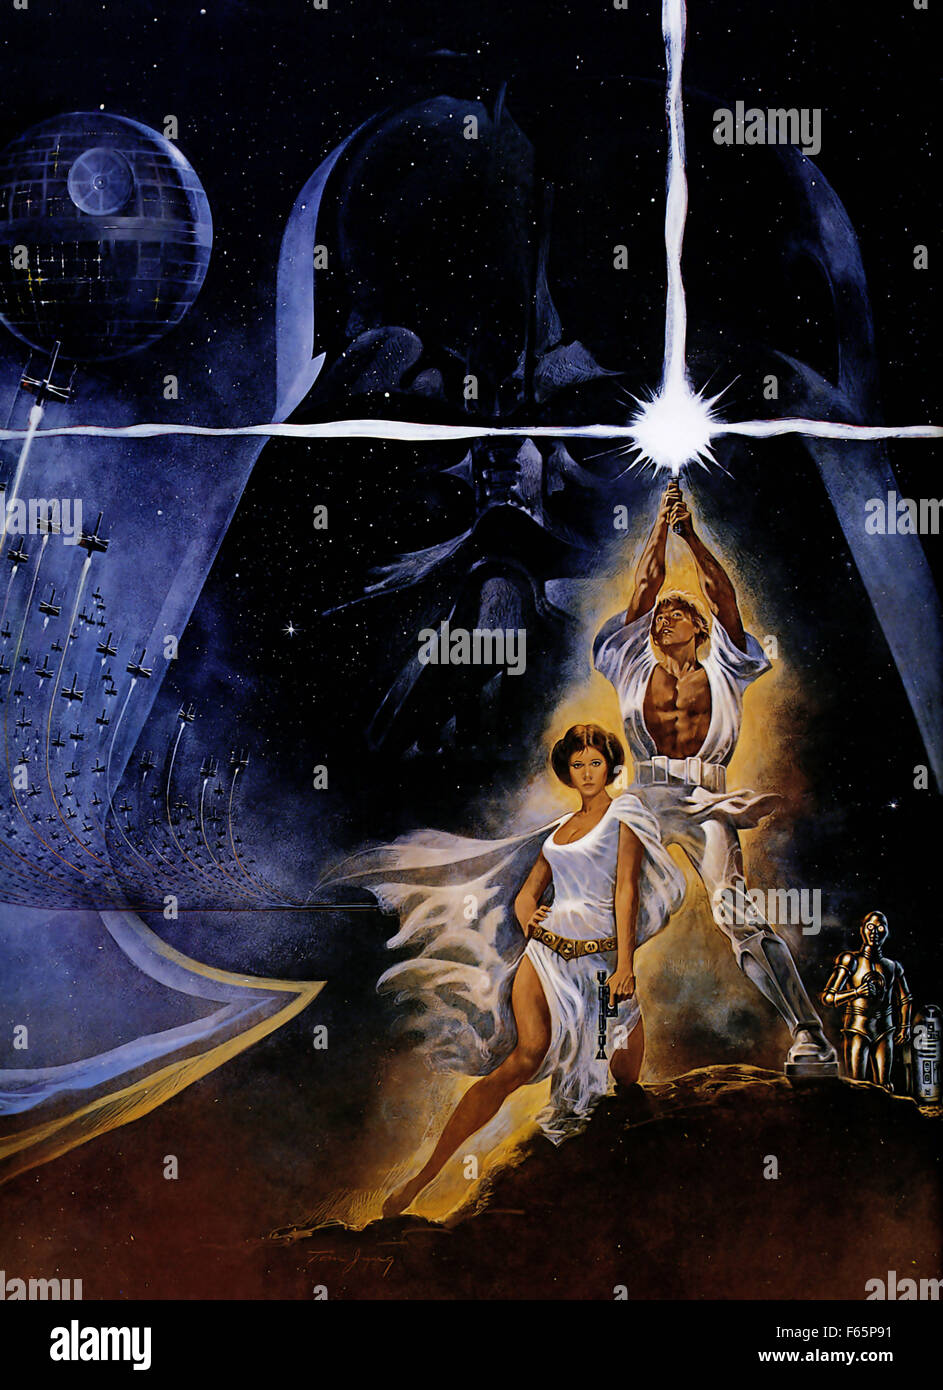 Star Wars Poster Iv High Resolution Stock Photography And Images Alamy